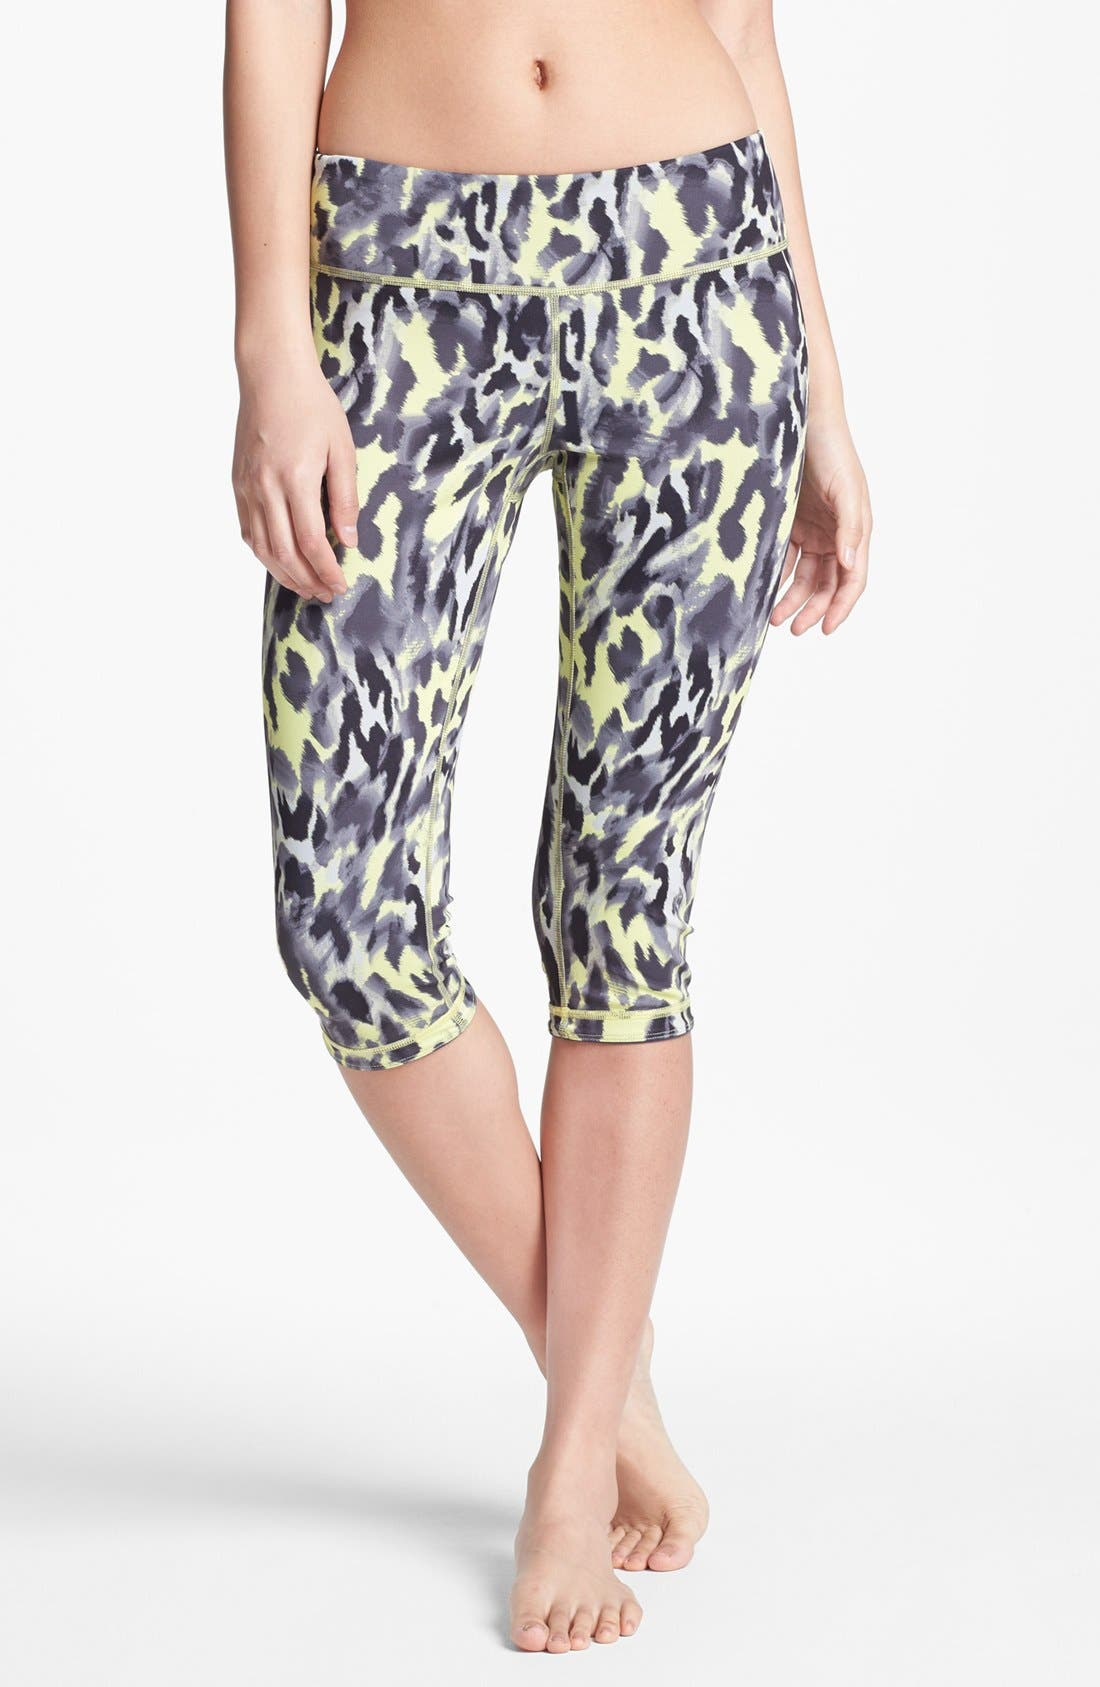 Alternate Image 1 Selected - Zella 'Live In' Reversible Capri Leggings